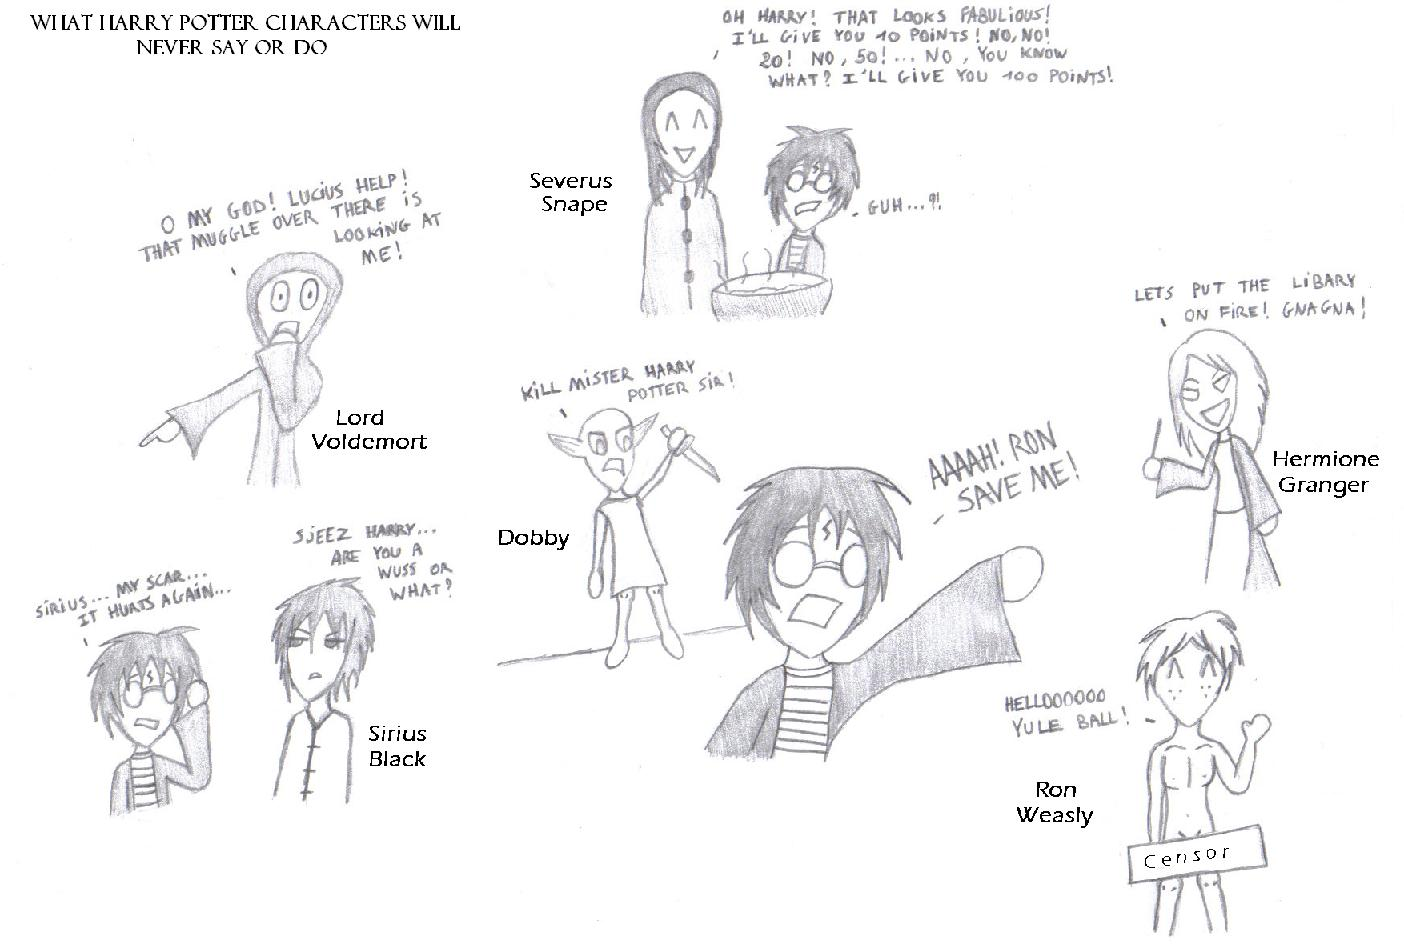 !What HP Characs Will Never Say Or Do! by Sora_Miyara